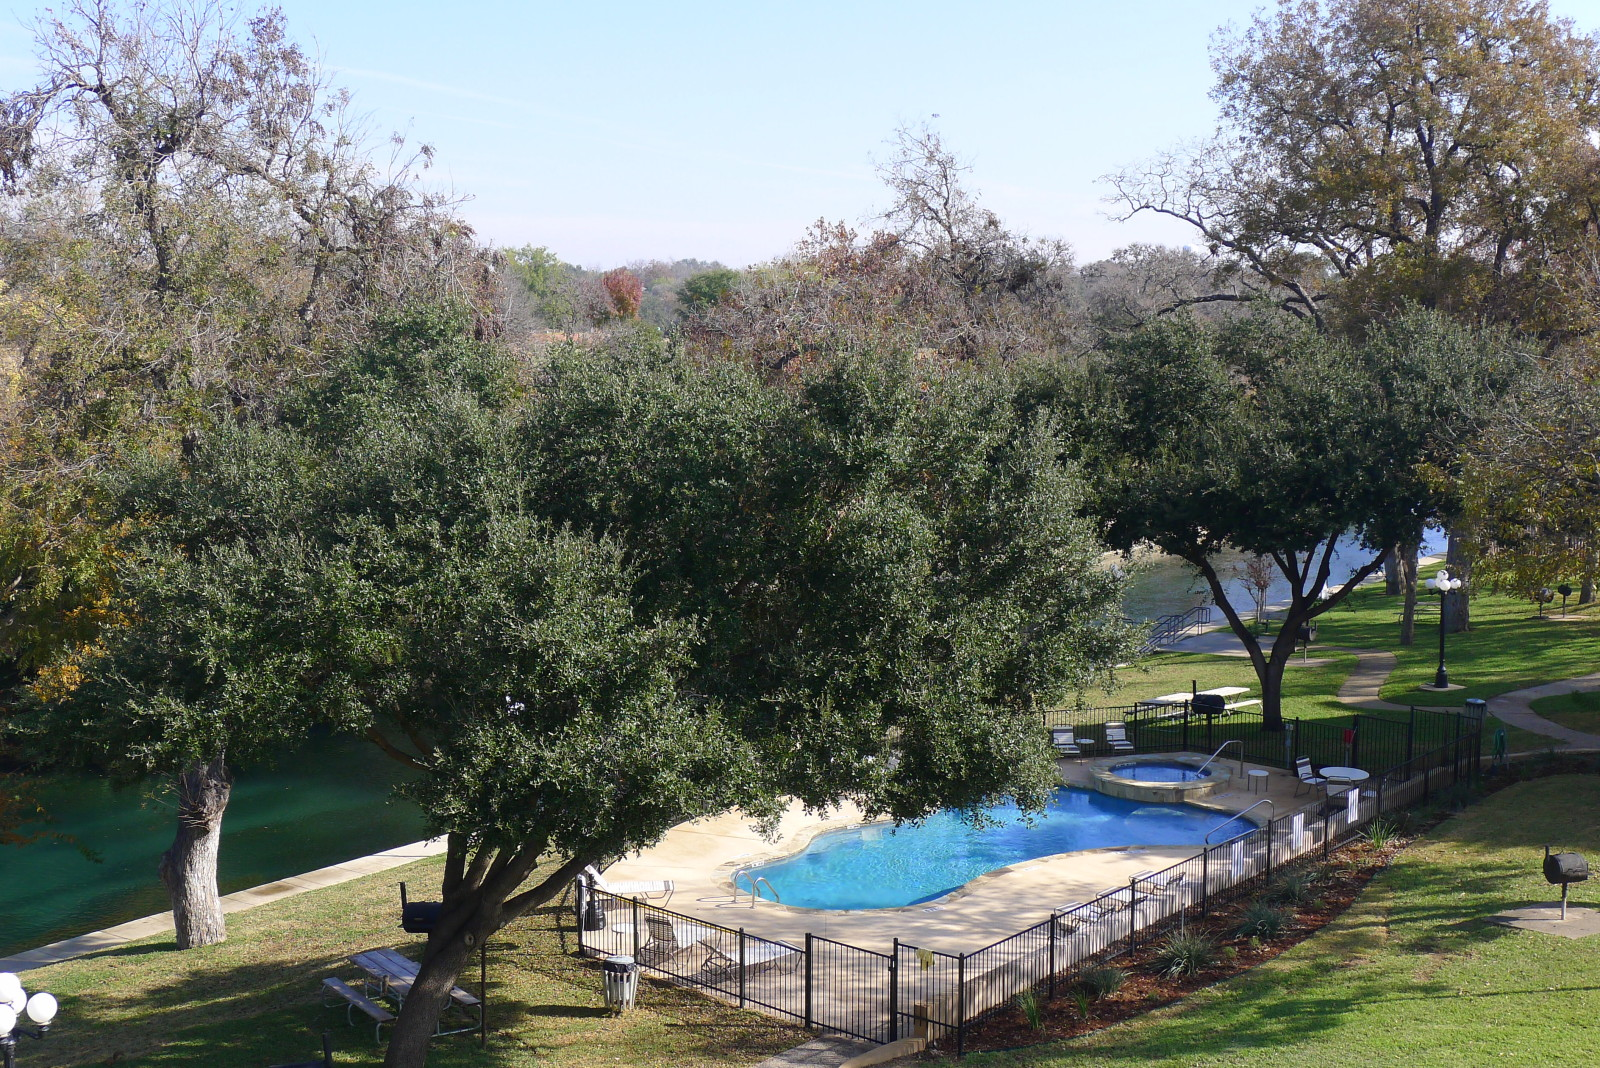 River Run Condos The Best Kept Secret On The Comal River